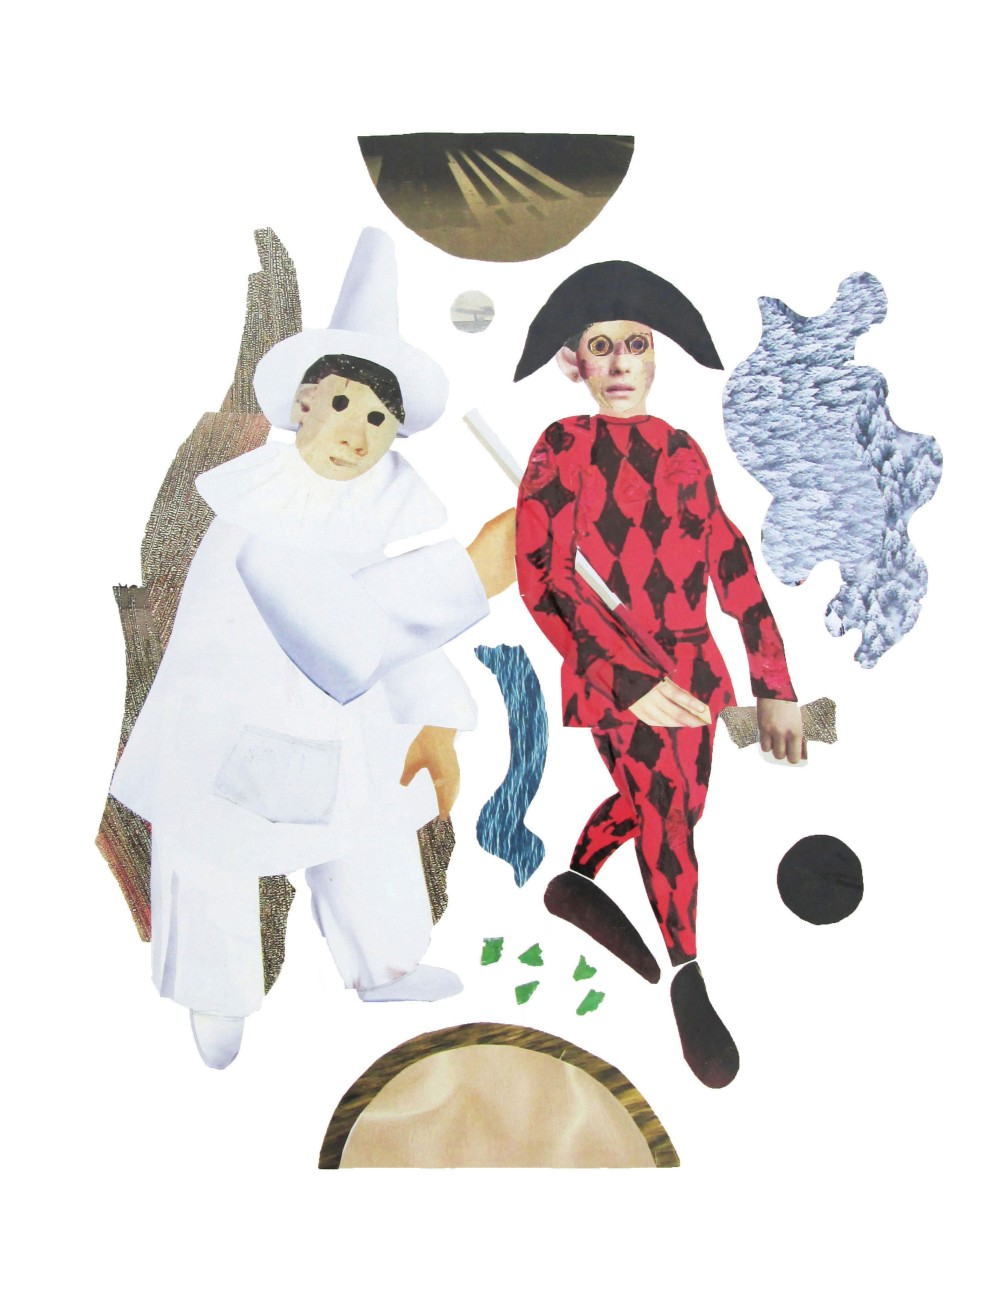 Harlequin And Pierrot (Collage)